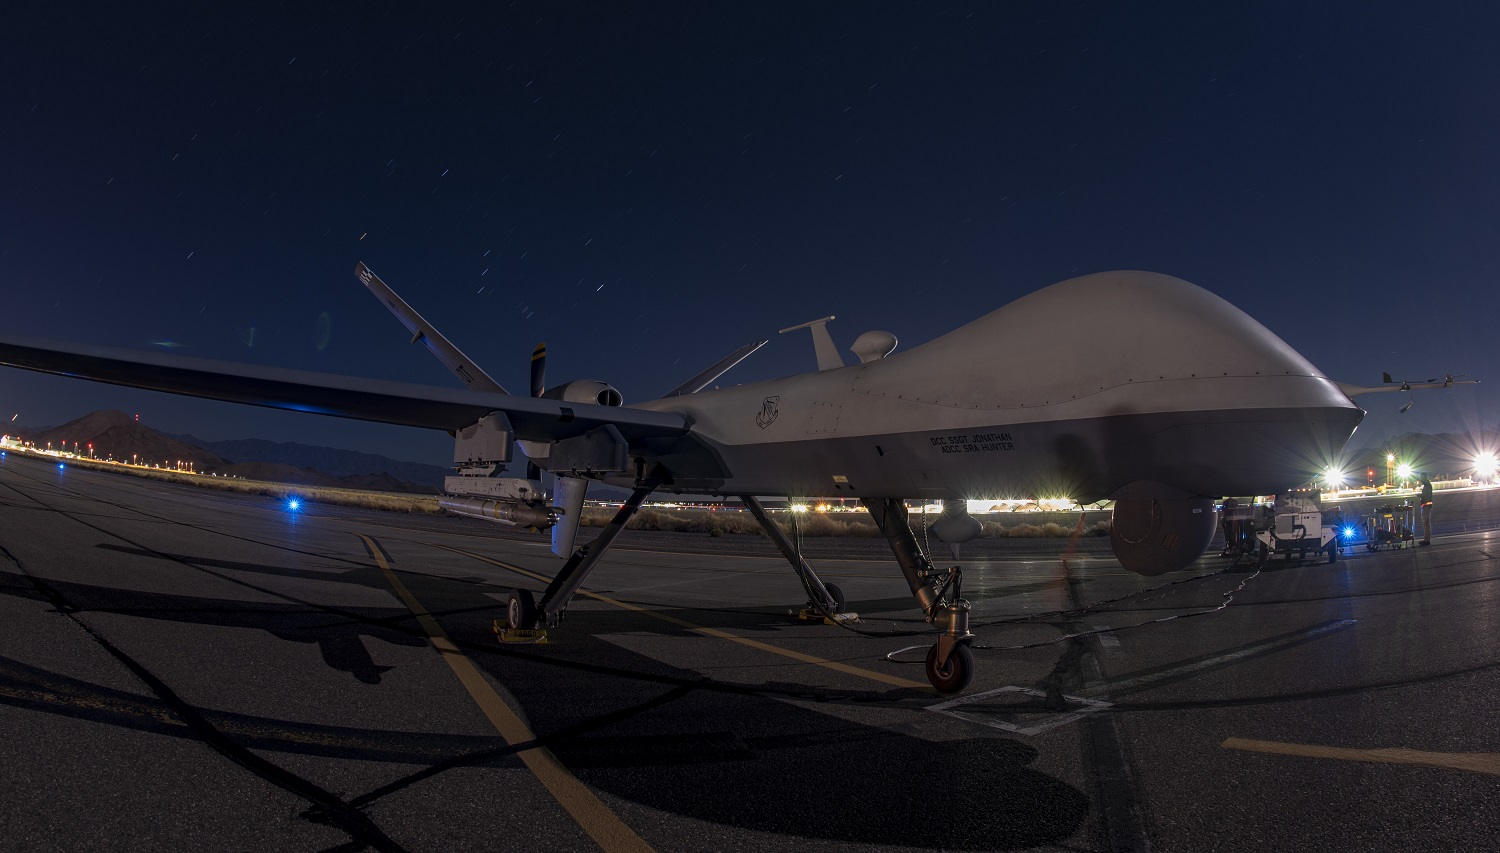 US Air Force MQ-9 Reaper UAV Fires AIM-9X Air-to-Air Missile